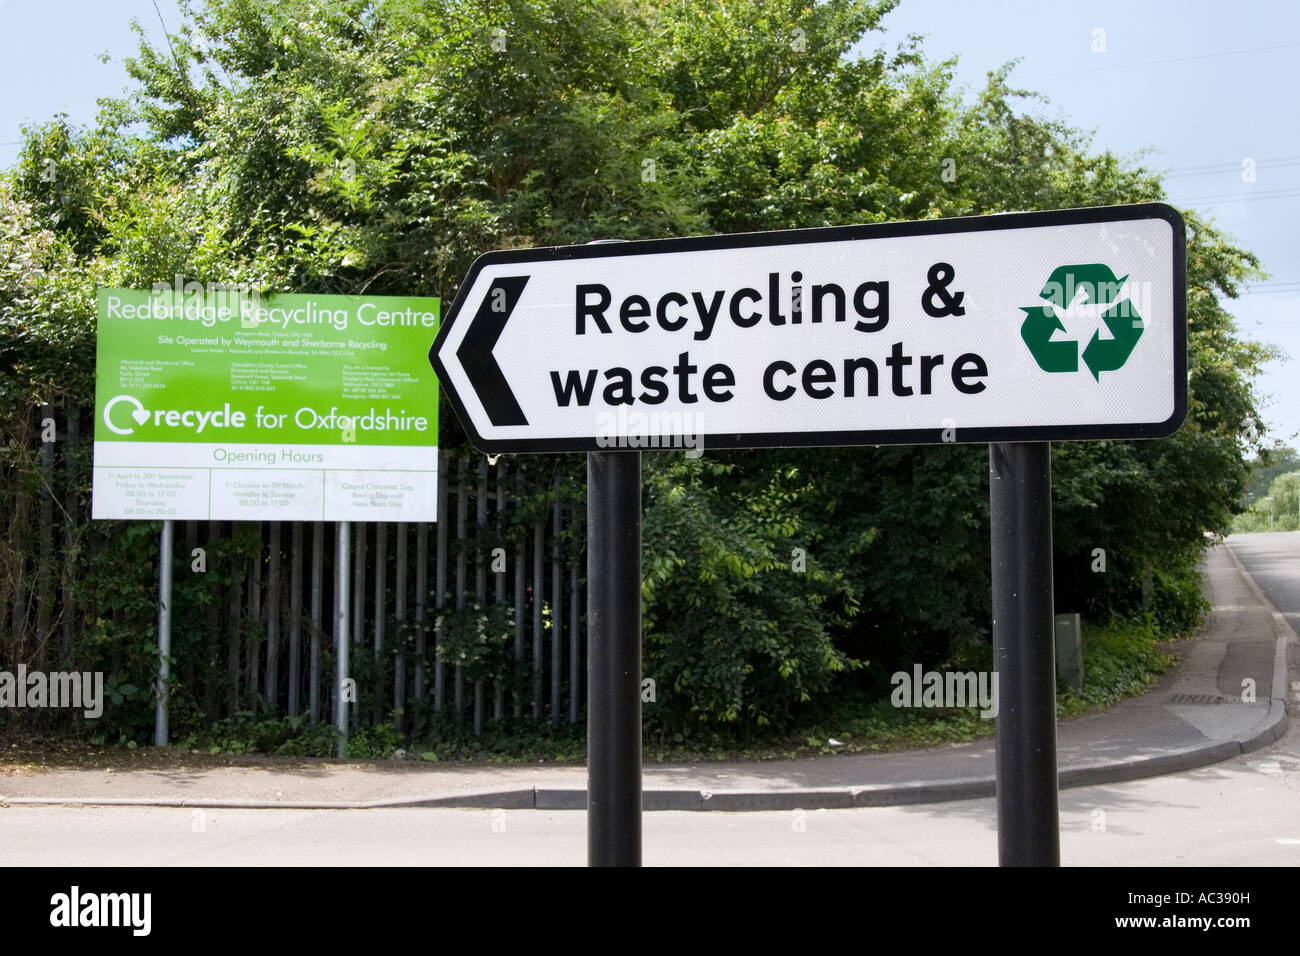 Waste and recycling centre in Oxfordshire 2 - Stock Image